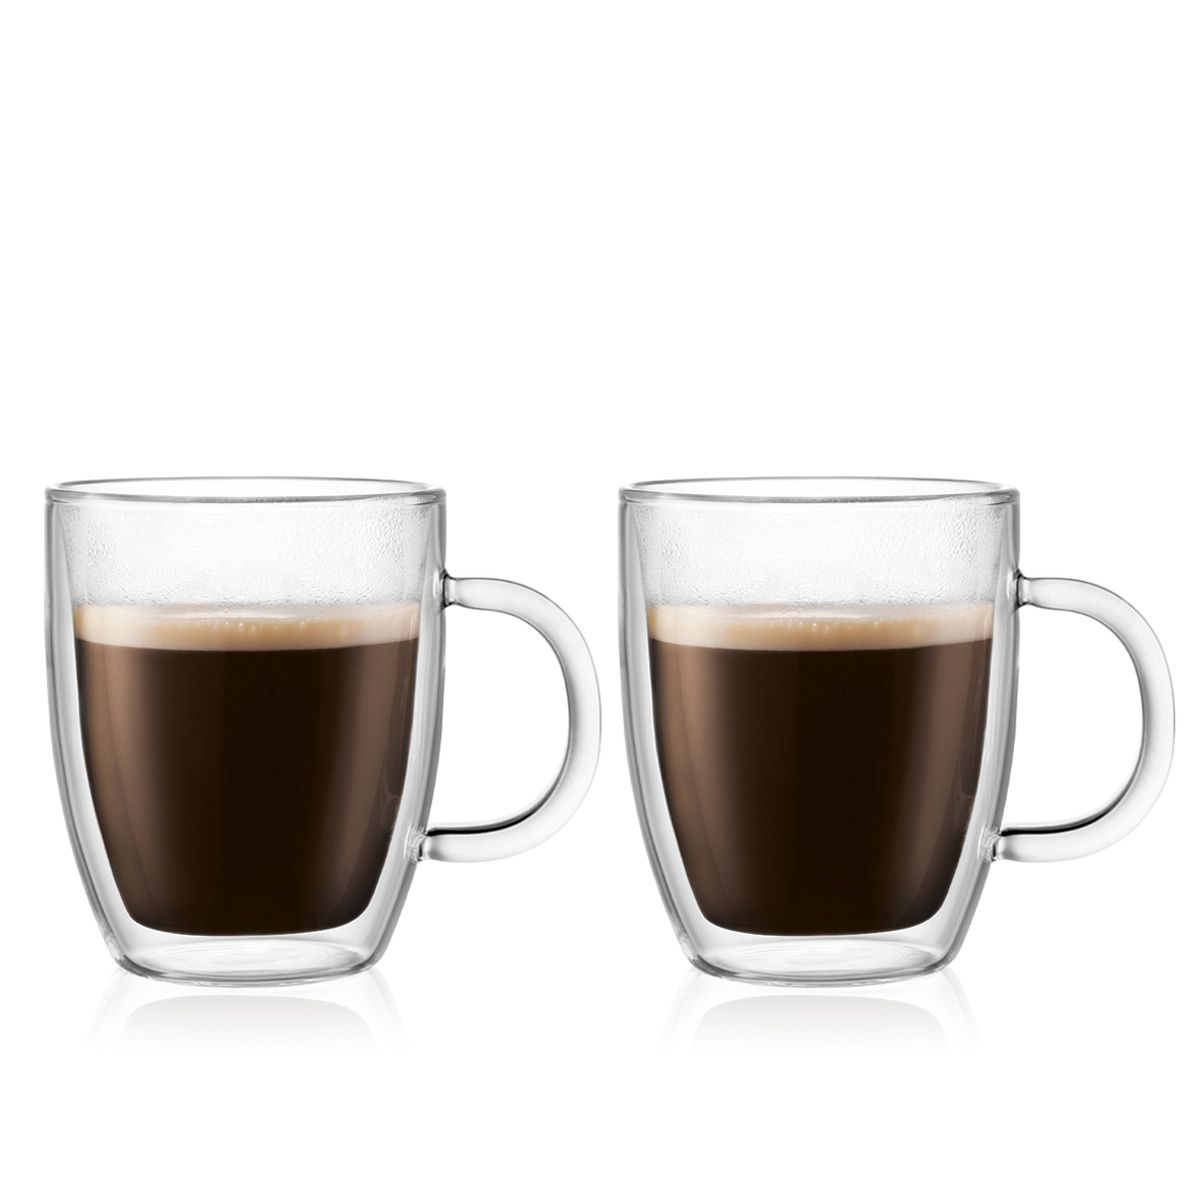 Espresso Cup BISTRO - 2 Pieces Set 0.3 L